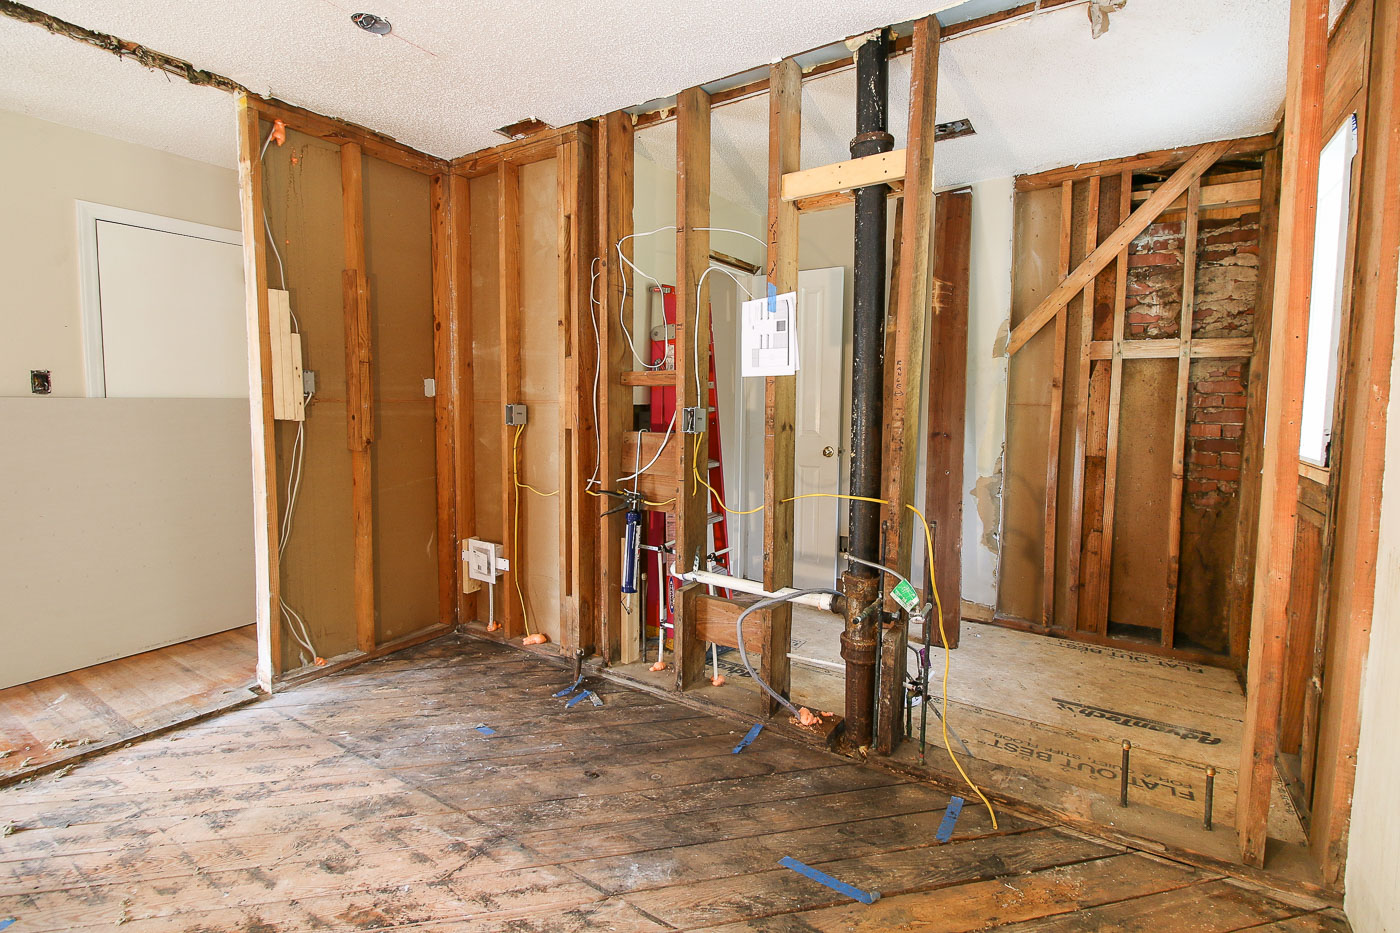 Millie S Remodel Framing Electrical Plumbing Oh My Pretty Handy Girl